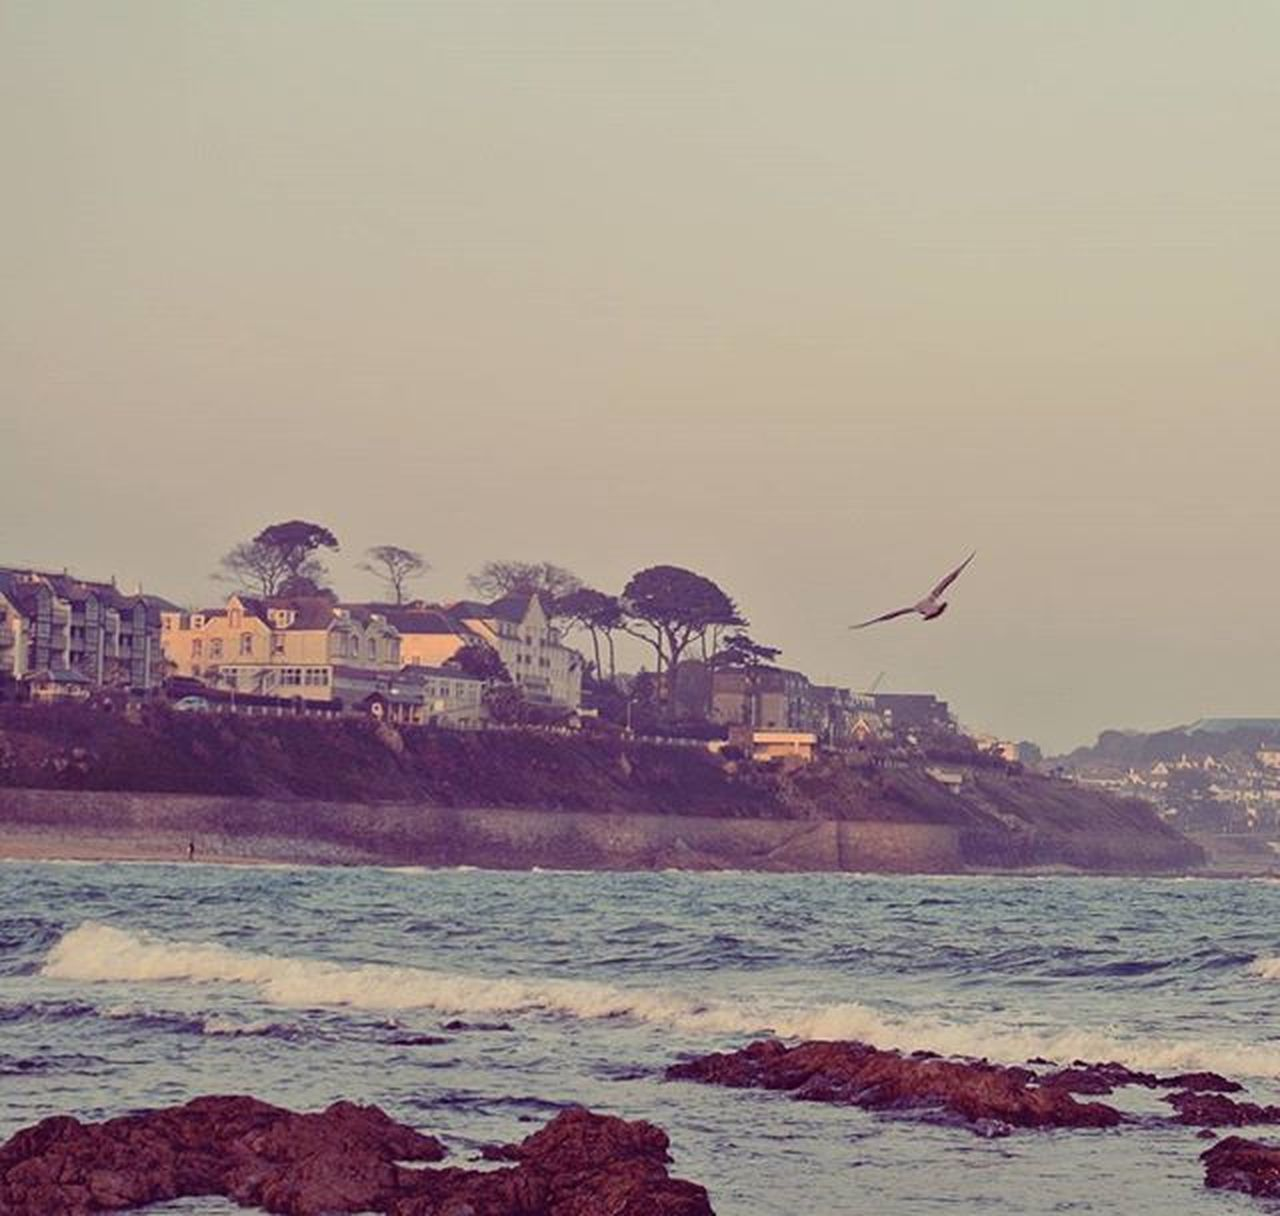 sea, water, animal themes, outdoors, no people, nature, bird, day, sky